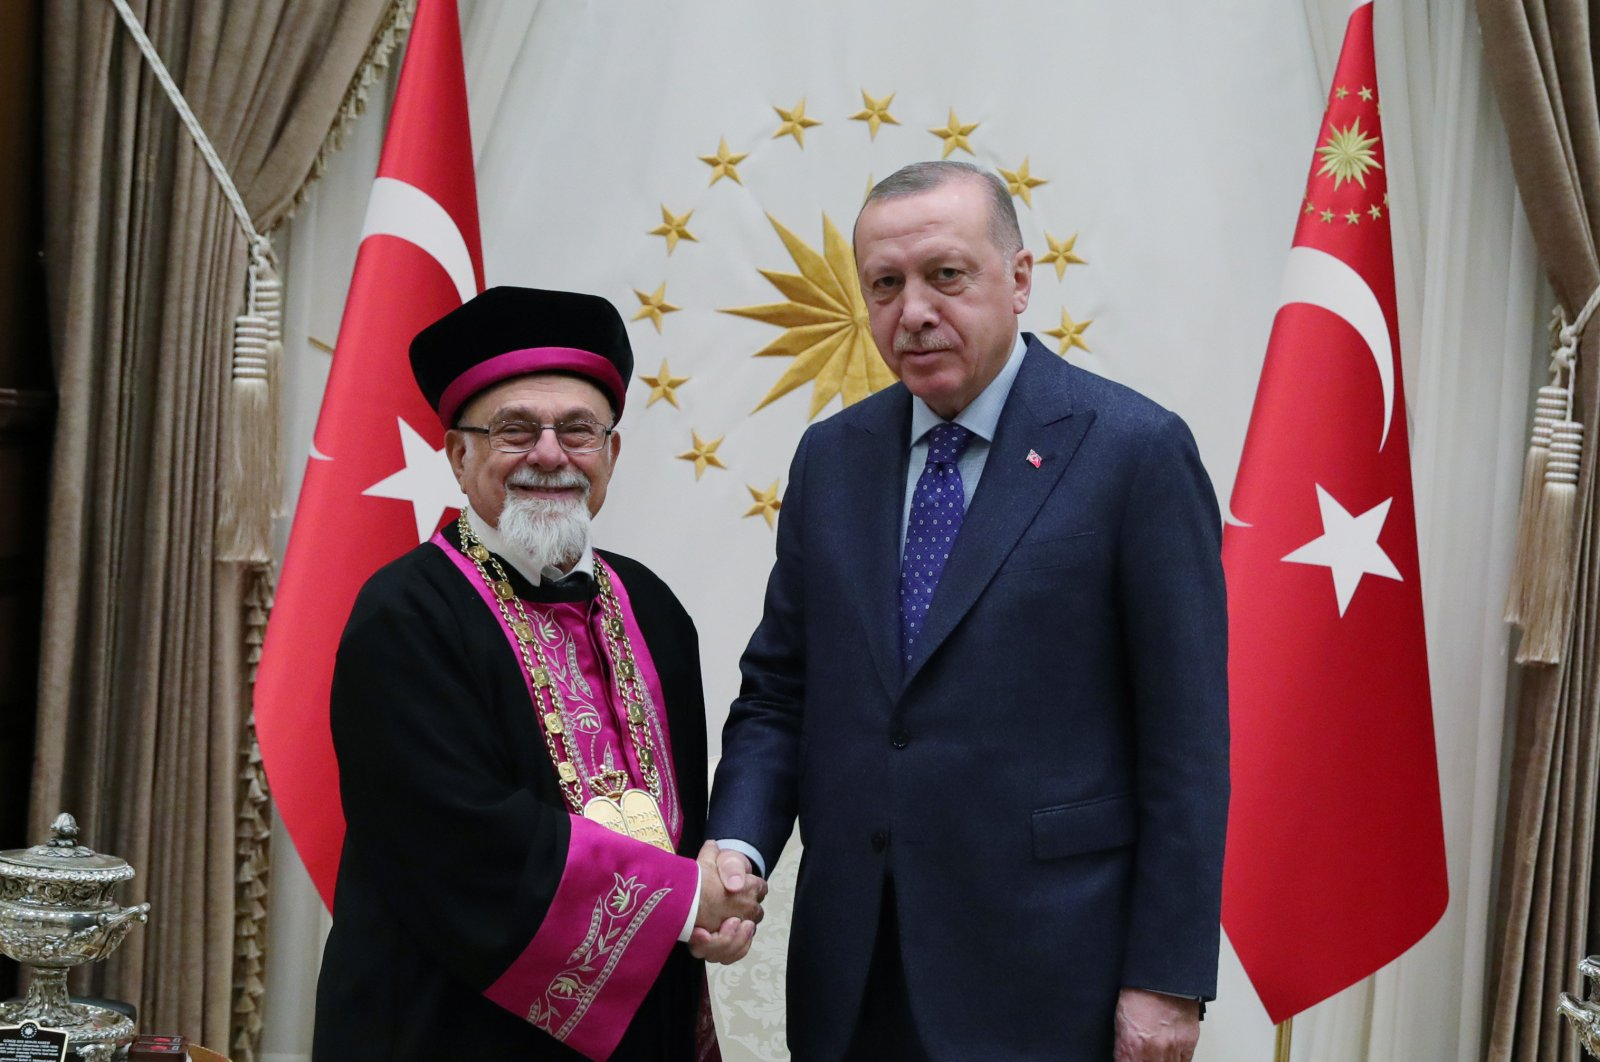 President Recep Tayyip Erdoğan shakes hands with Isak Helva, the chief rabbi of the Turkish Jewish community, on Jan. 31, 2020. (AA Photo)